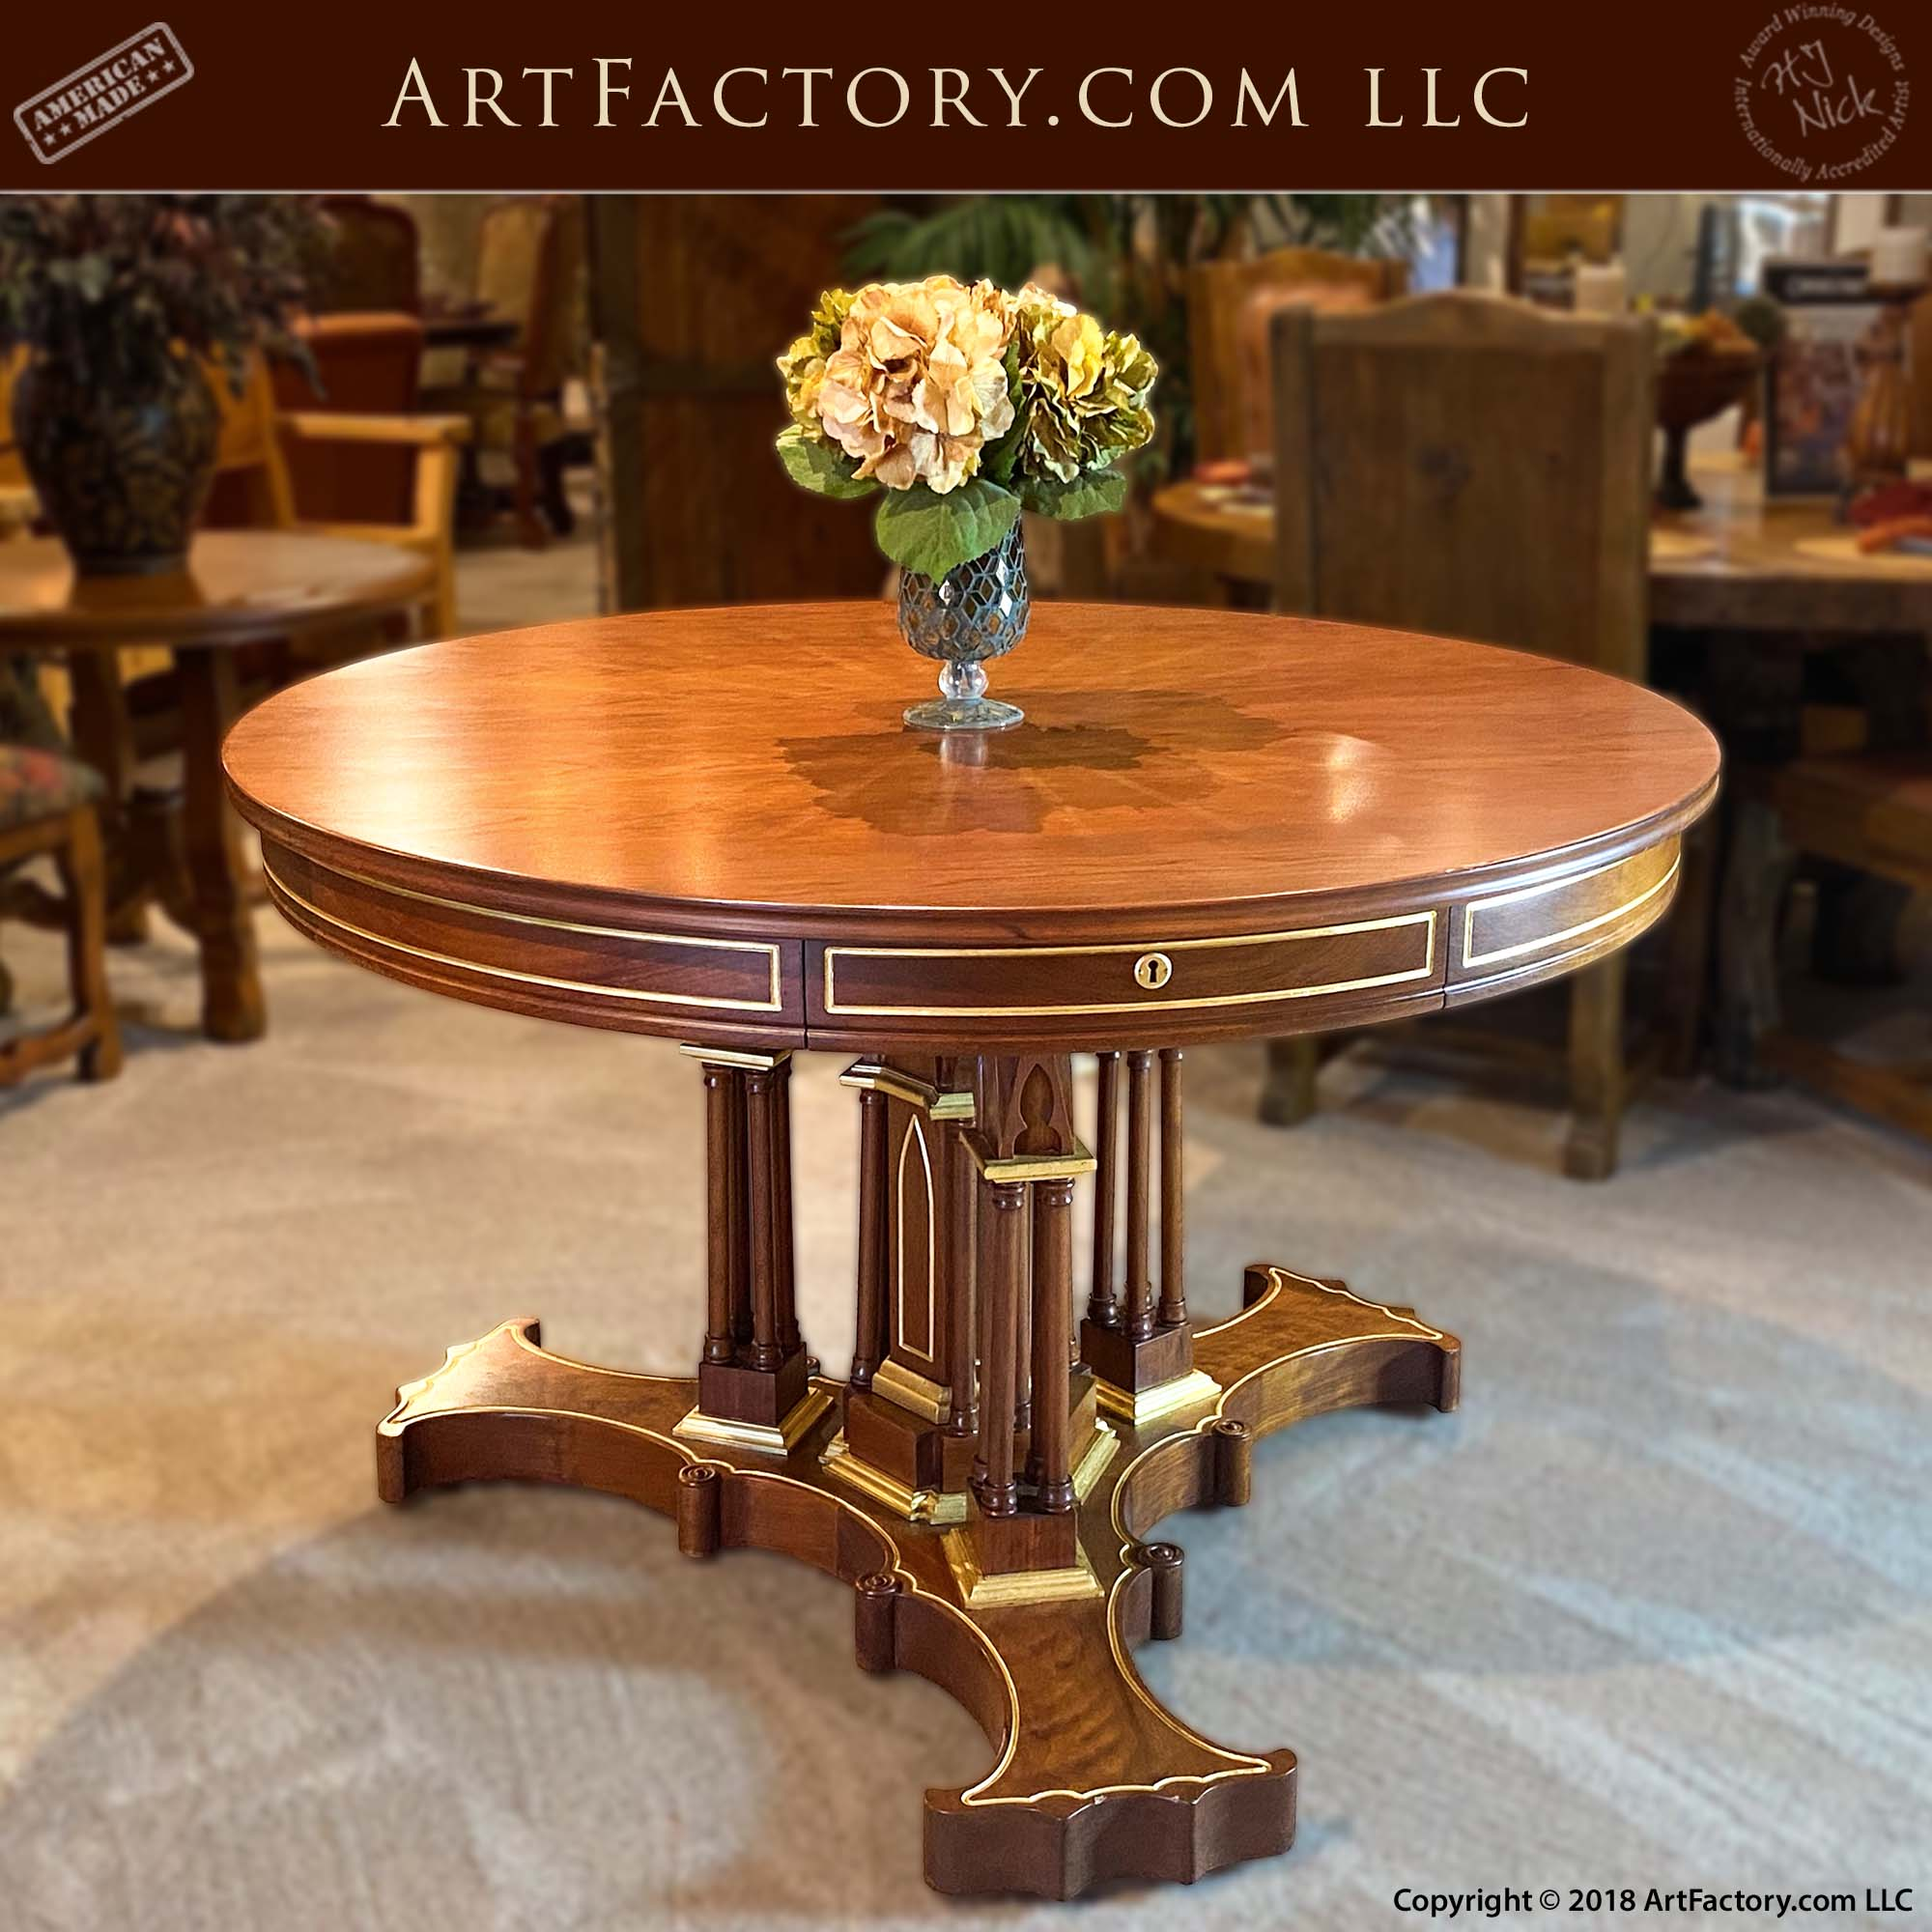 Cherry Wood Foyer Table: Solid Wood, 24KT Gold Leaf Gilded